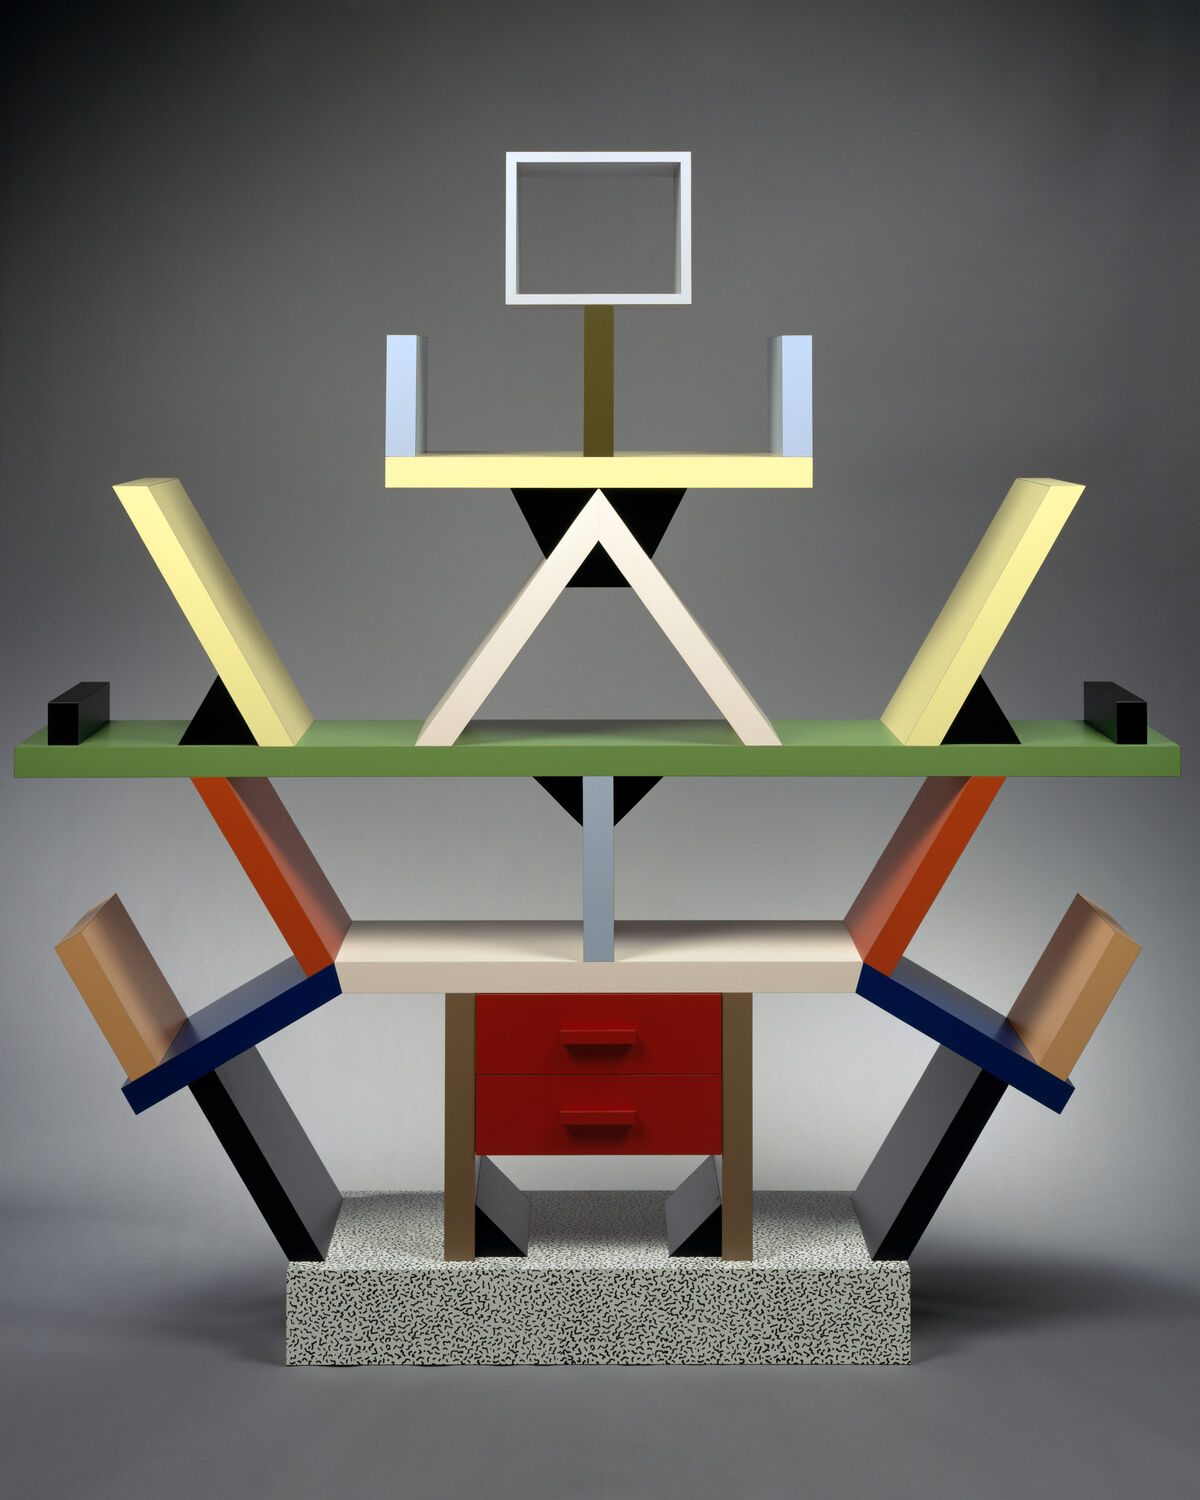 What You Need to Know about Memphis Design Pioneer Ettore